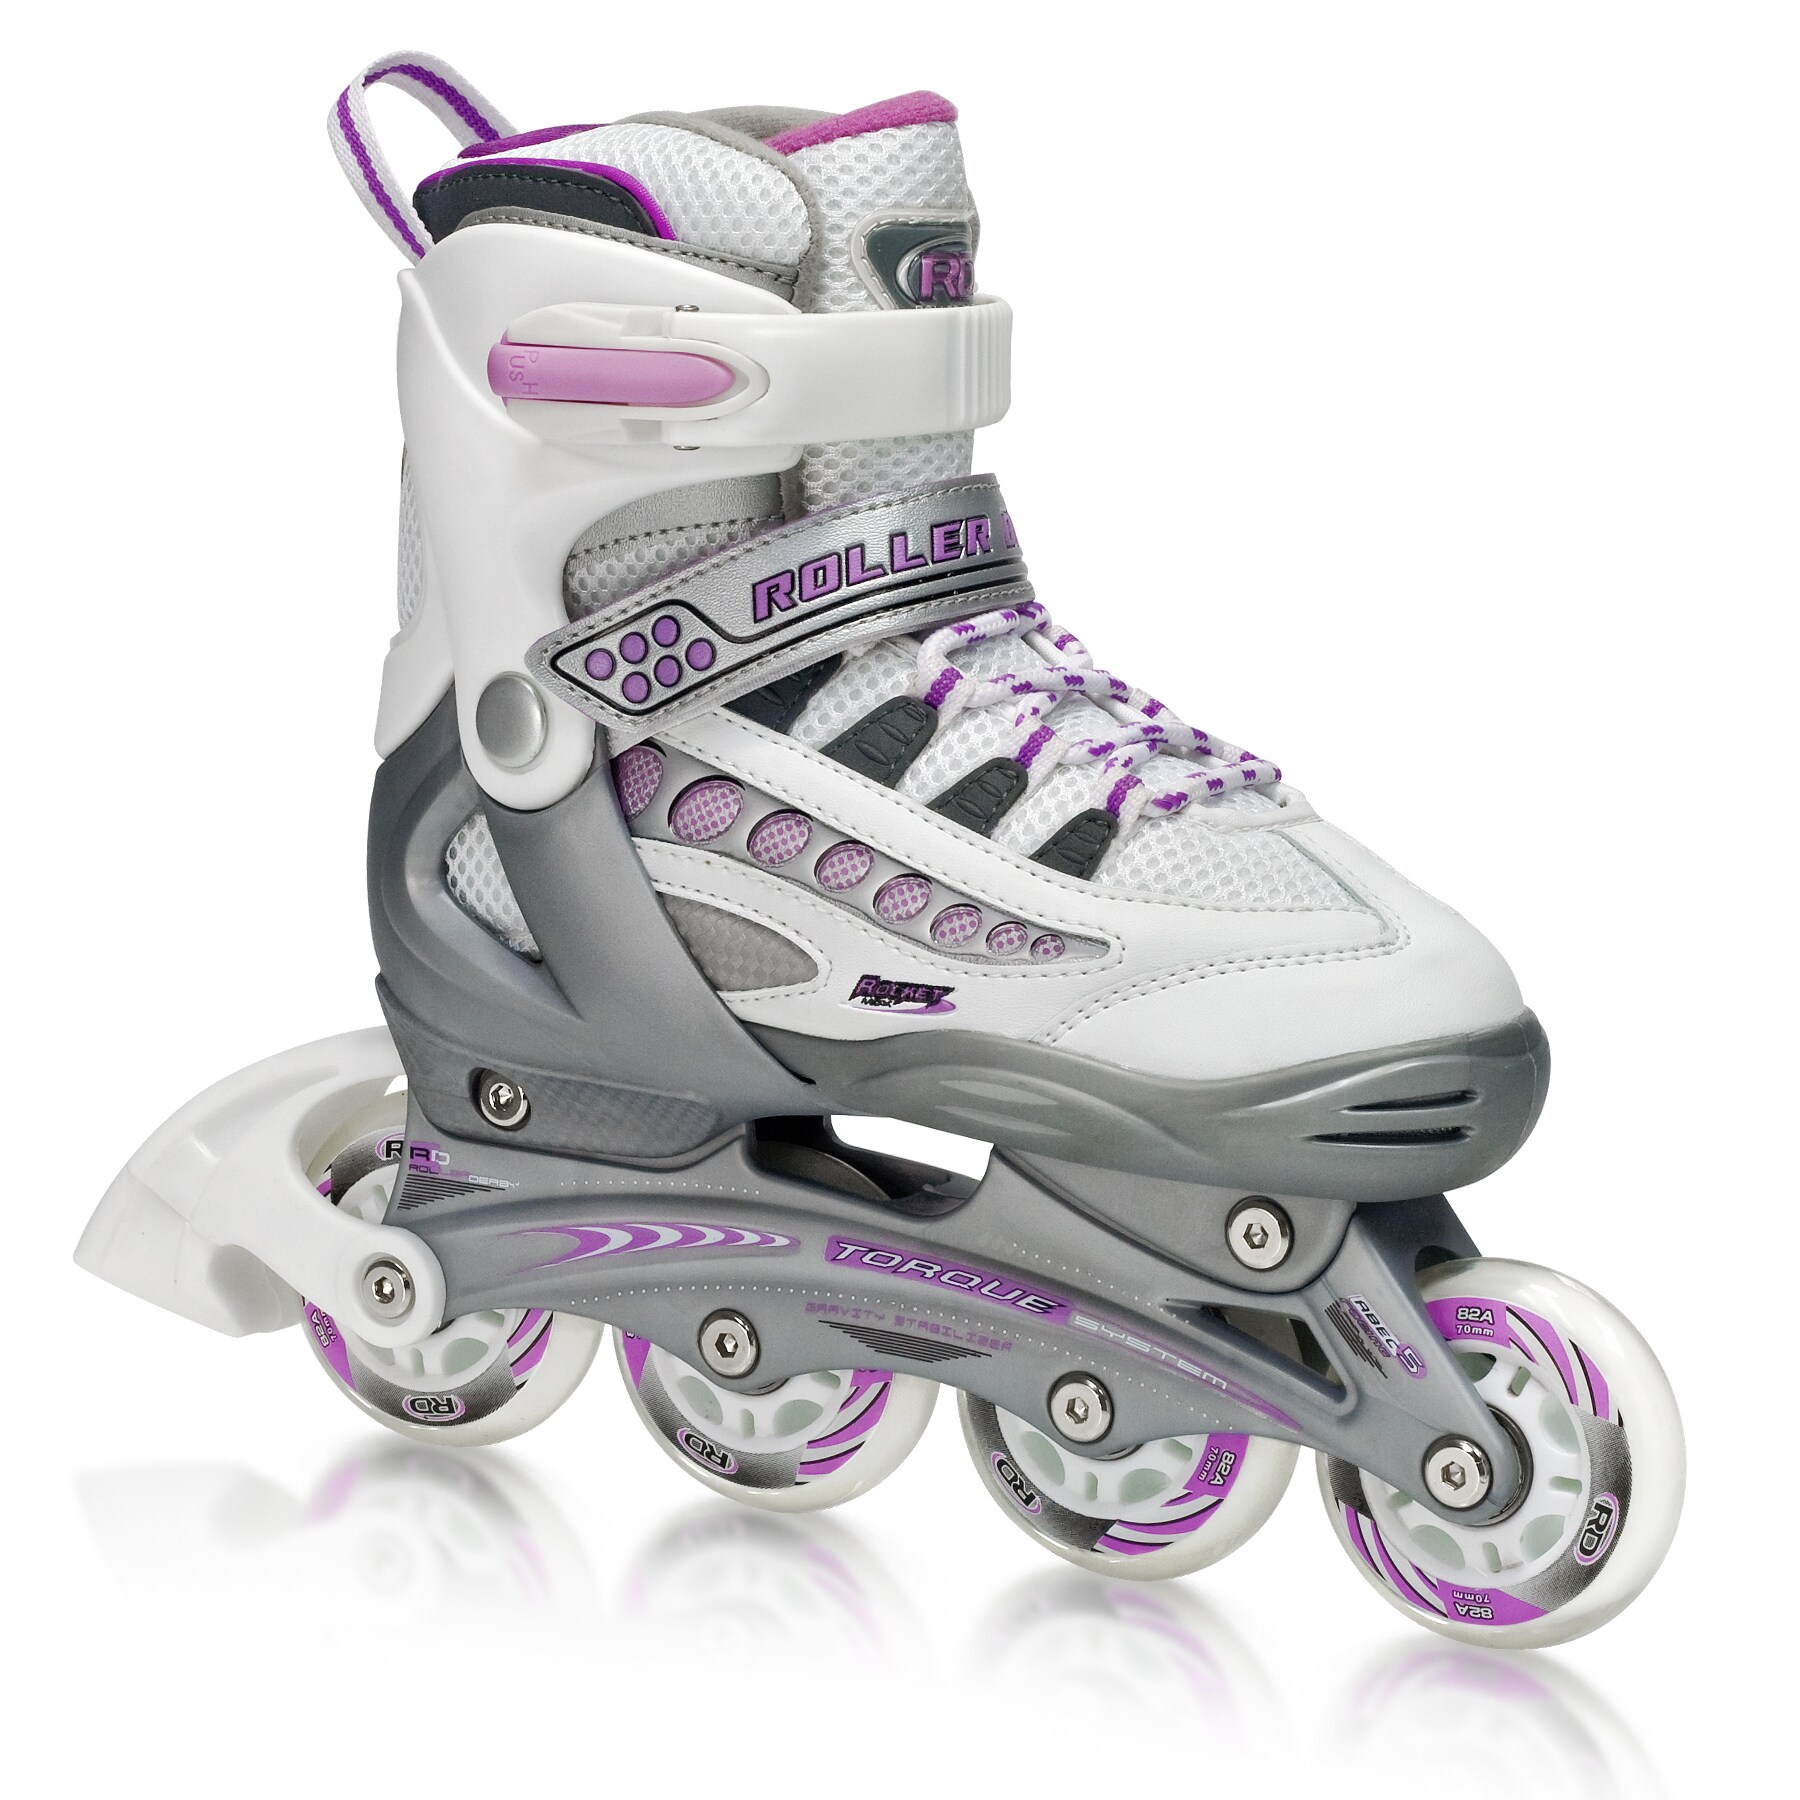 Rocket MDX Girl's Adjustable Inline Skates